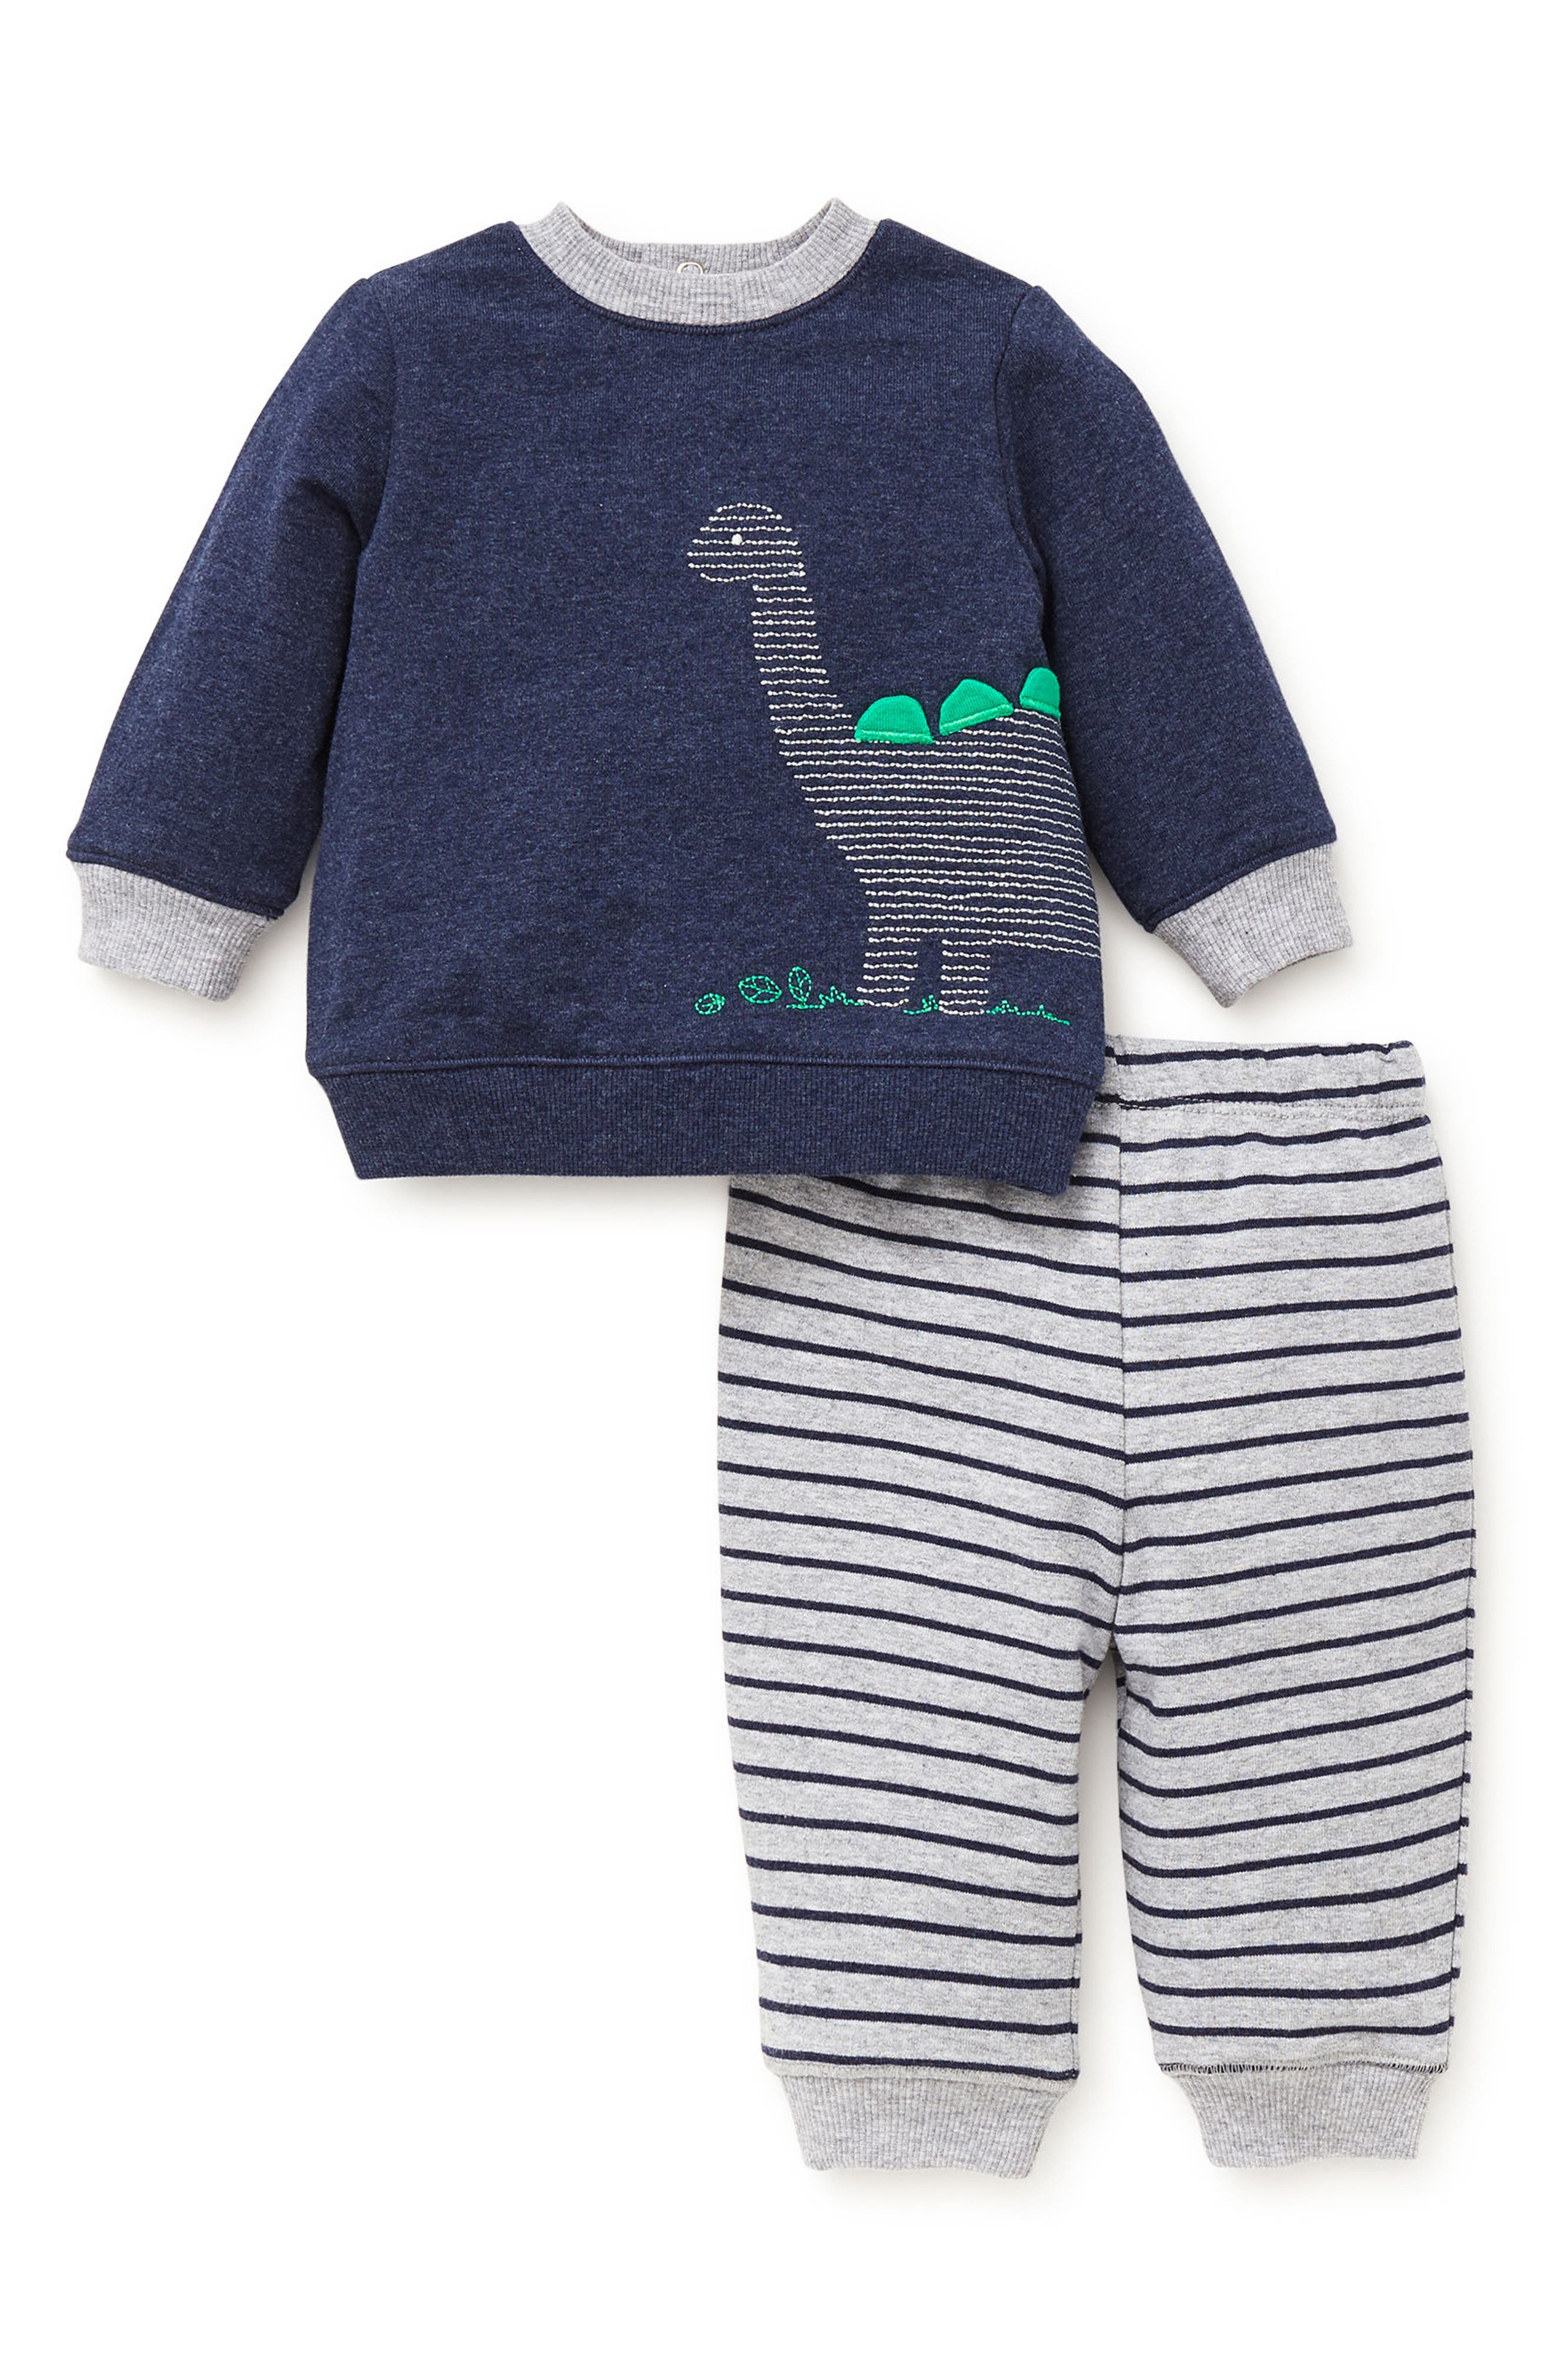 Dino Sweatshirt & Sweatpants Set,                             Alternate thumbnail 2, color,                             472